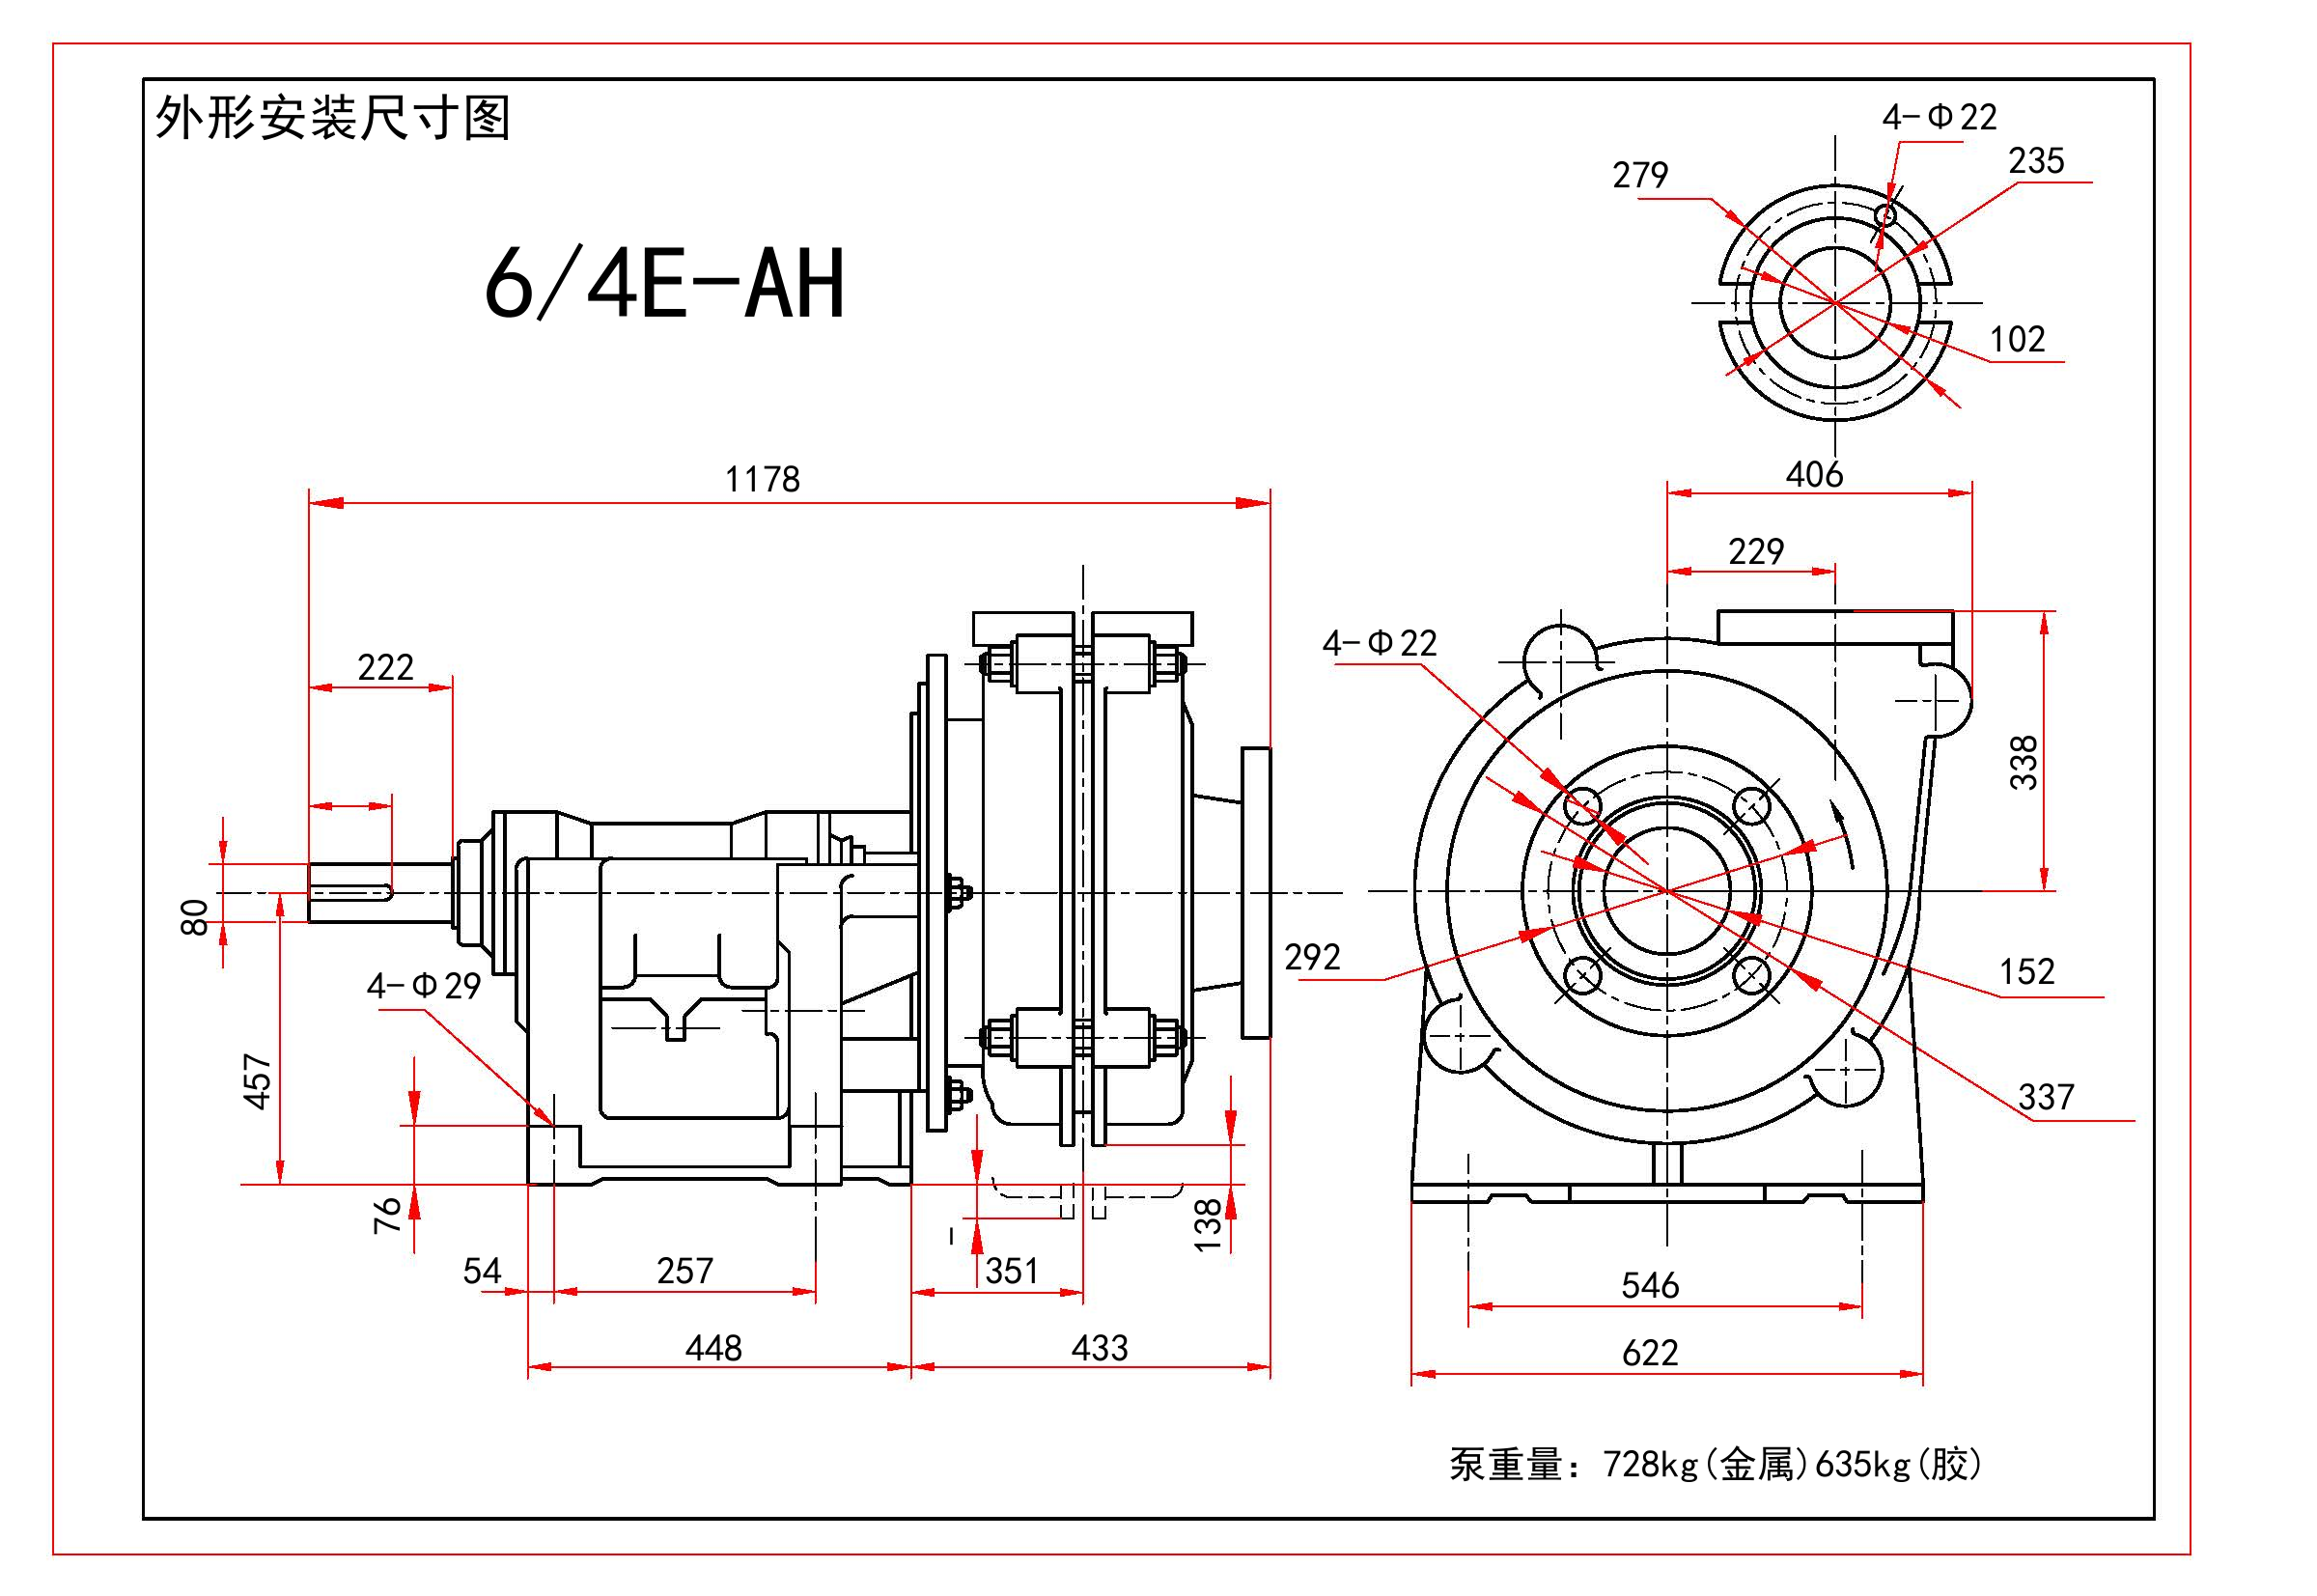 6/4E-AH Slurry Pump